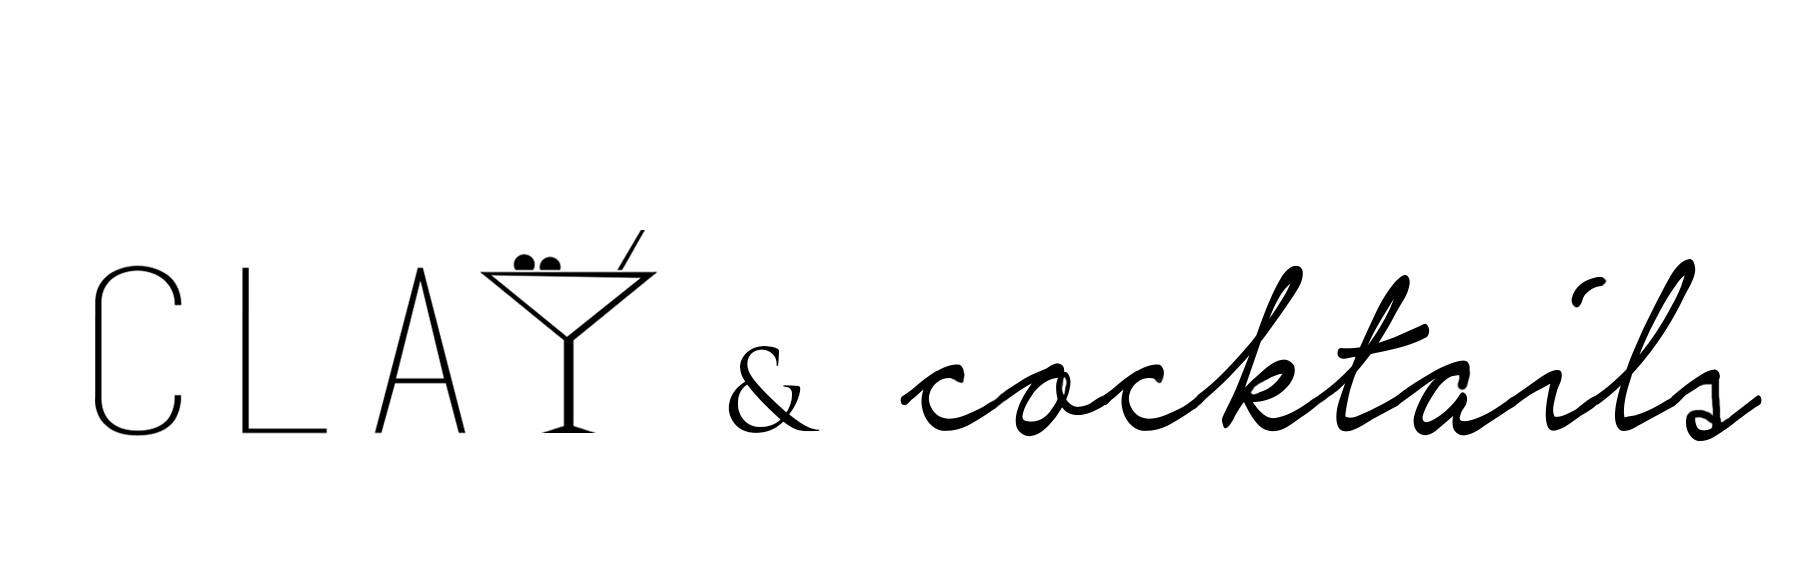 clay-and-cocktails logo.jpg